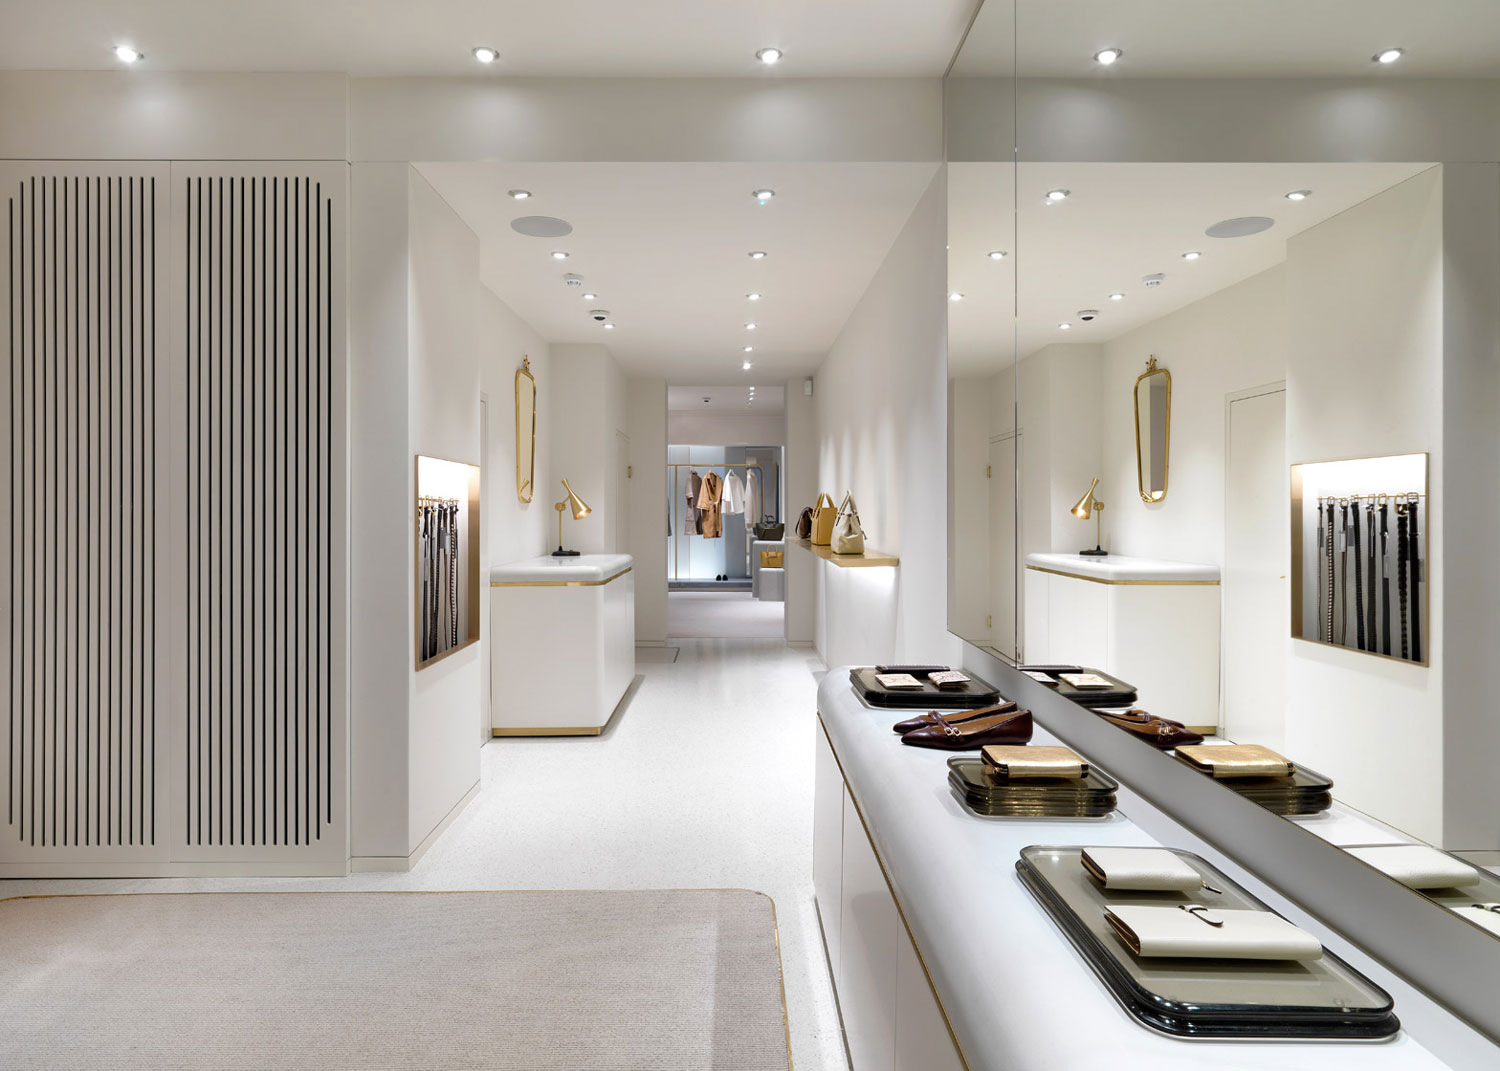 J m davidson london store by universal design studio - Studio interior design ...